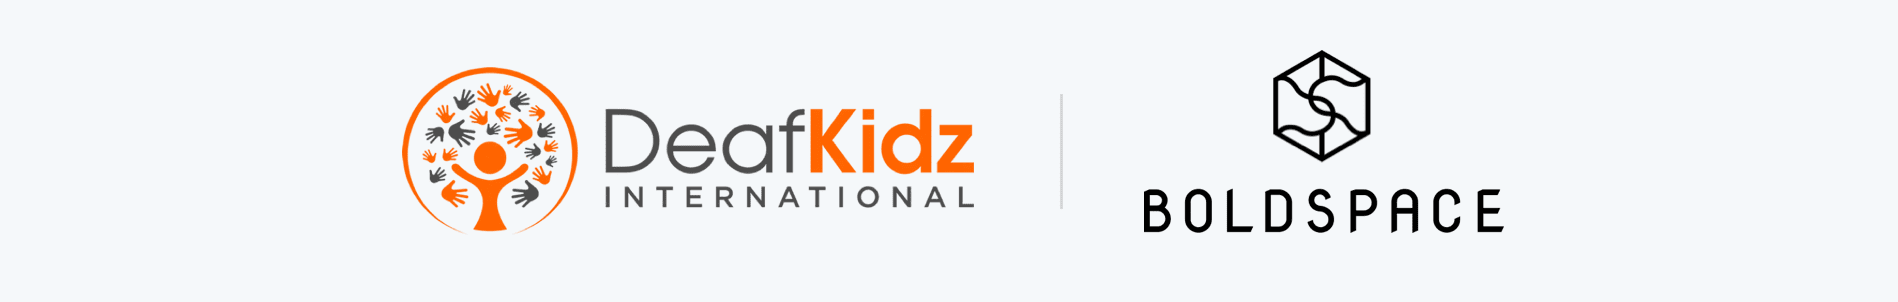 The DeafKidz and Boldspace logo's